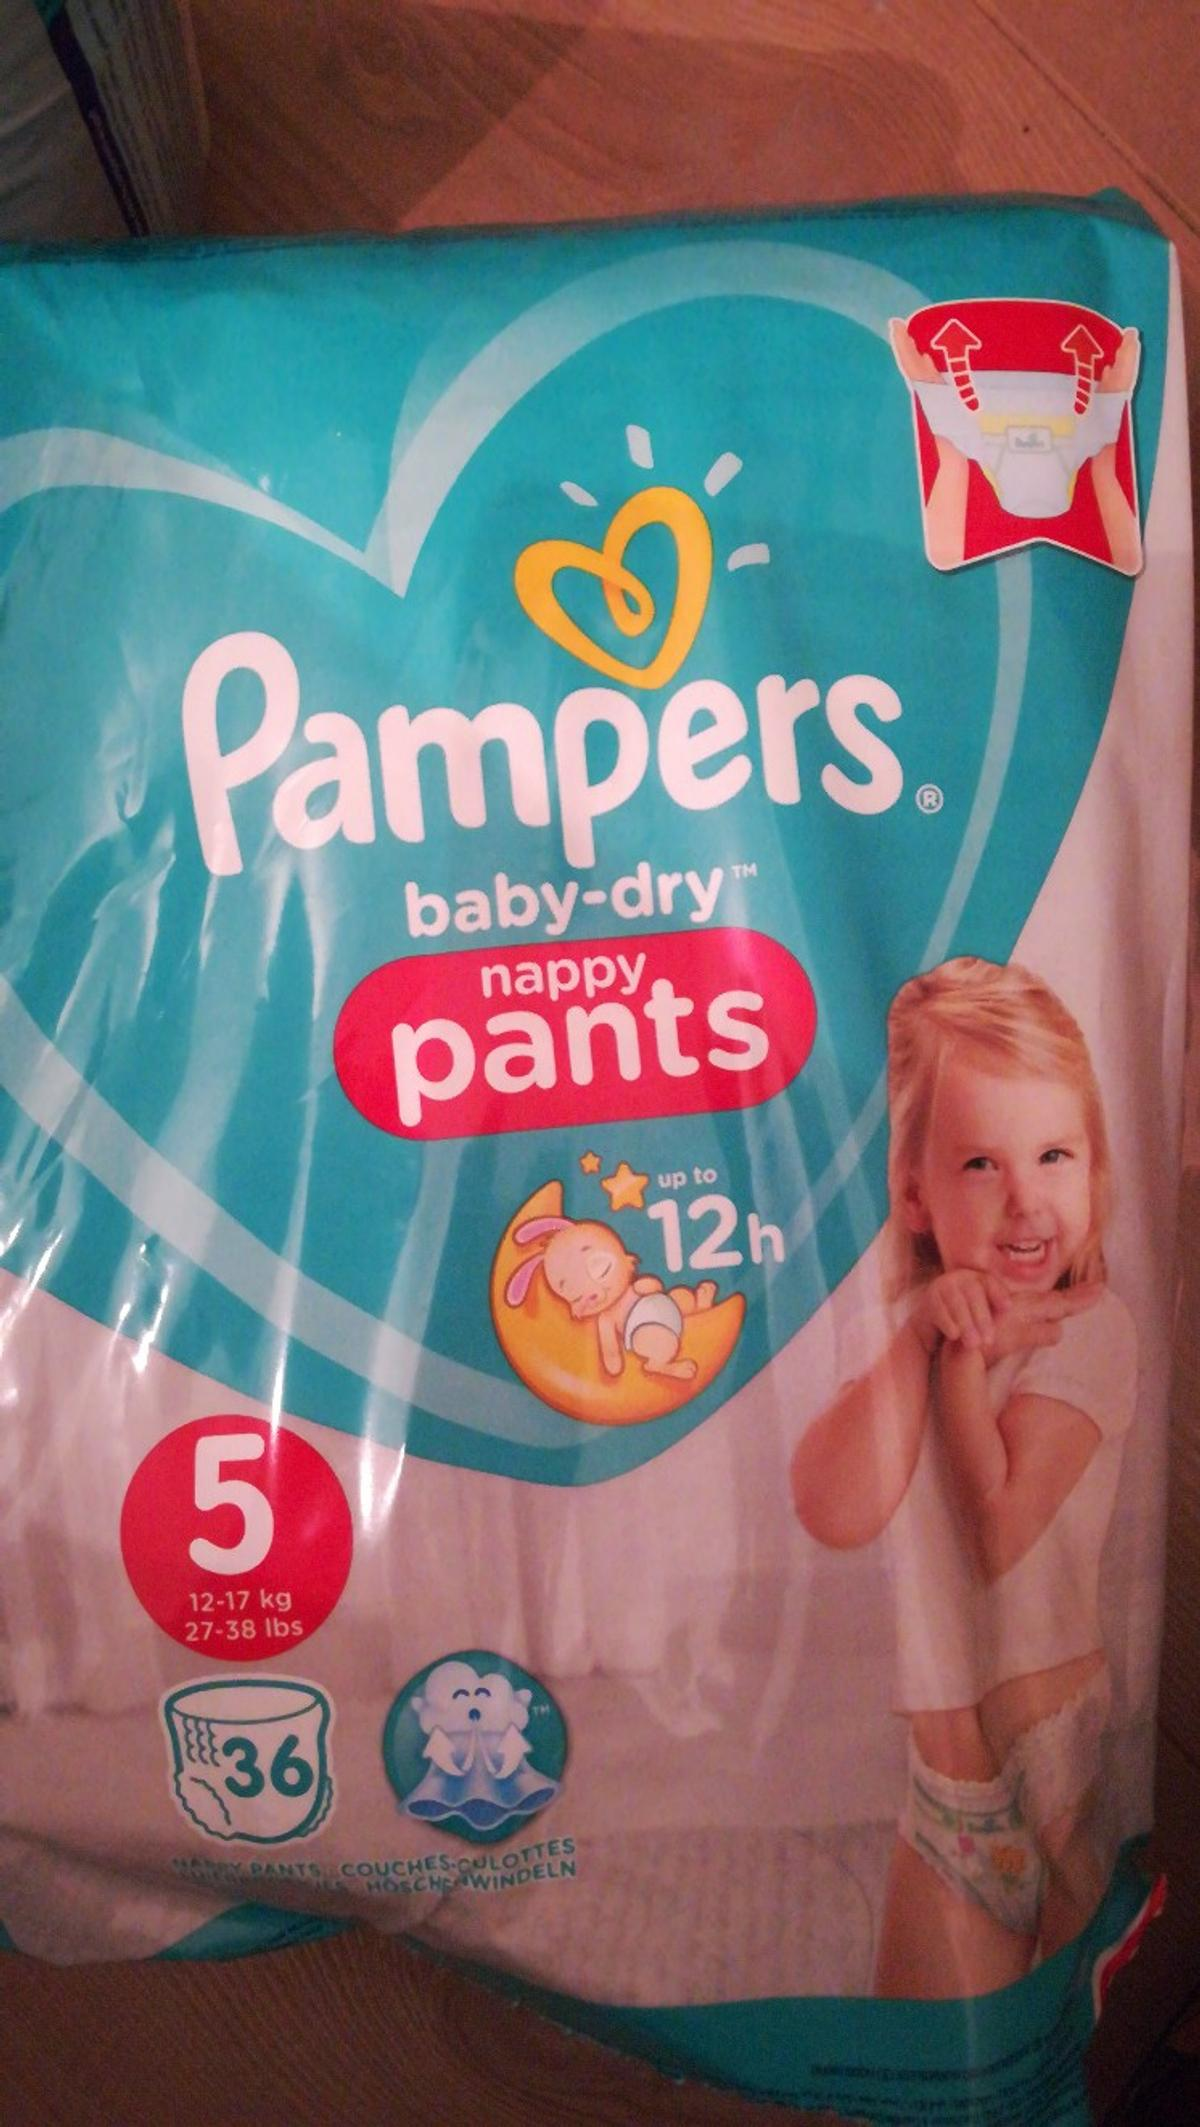 c333cbd601c0b6 Pampers baby dry pants windeln in 6136 for €25.00 for sale - Shpock